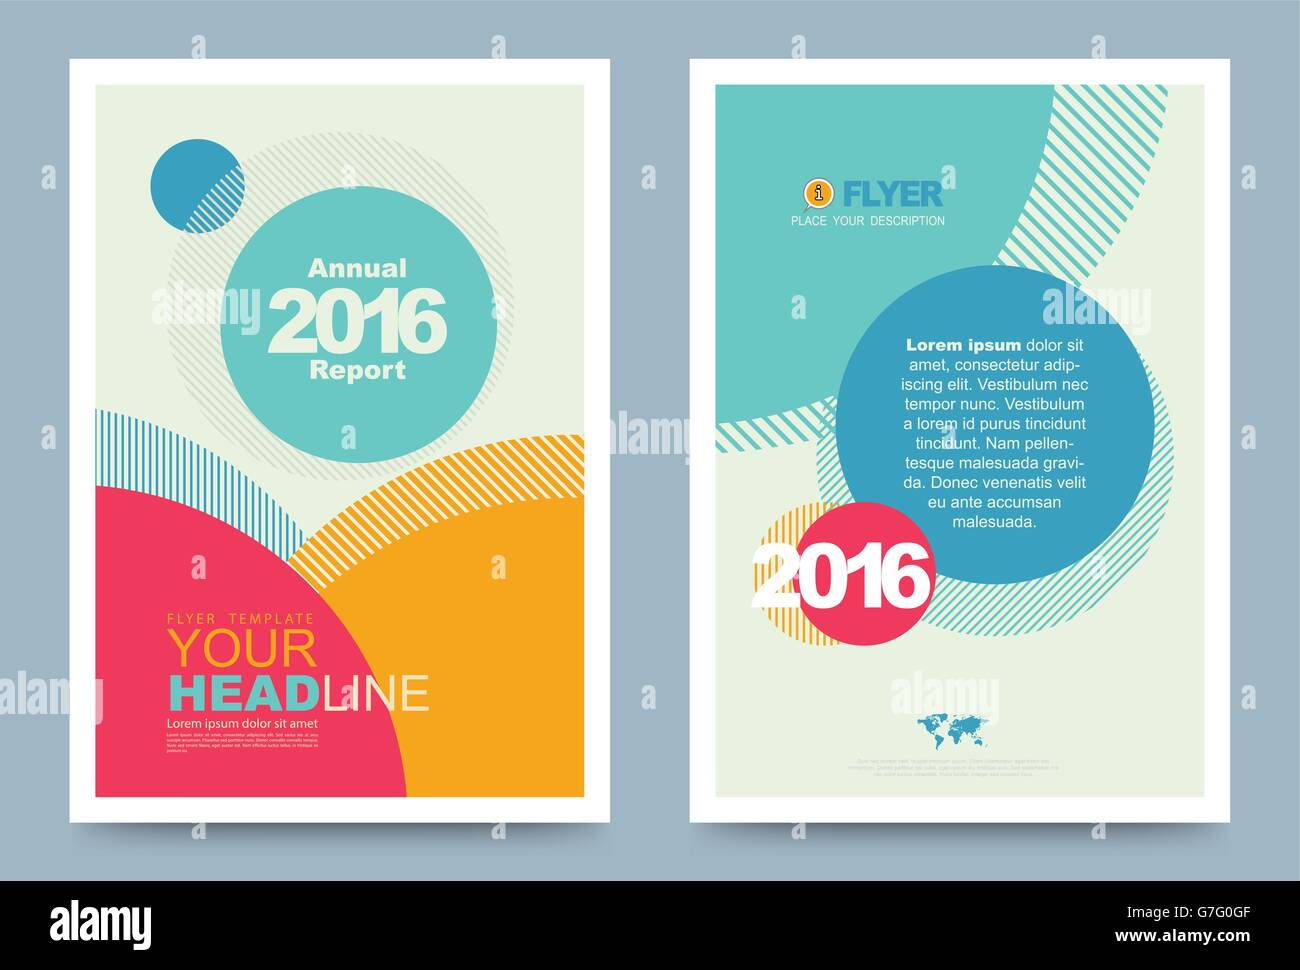 cover template design for business annual report flyer brochure, Presentation templates